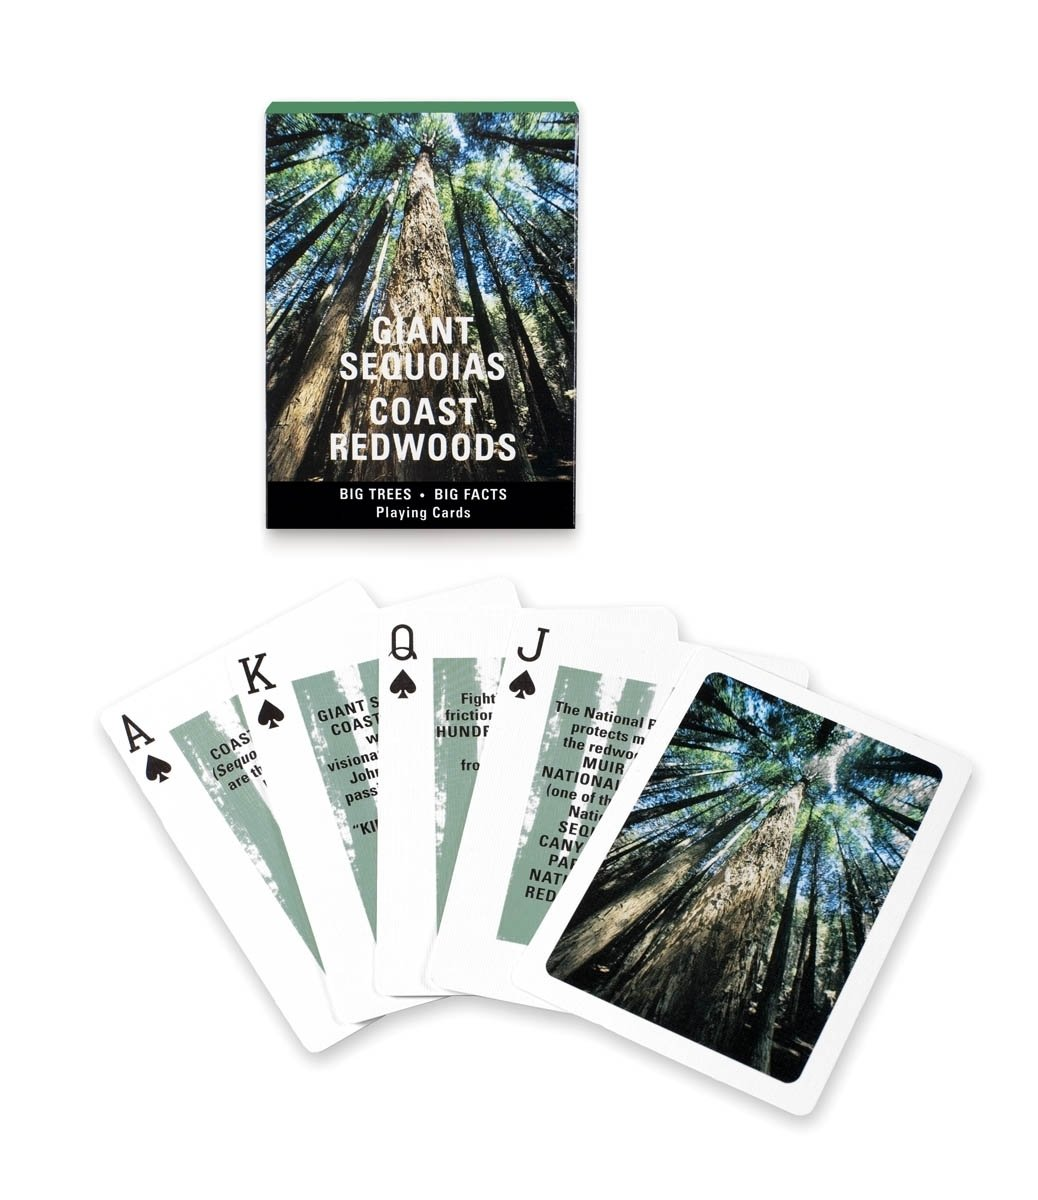 Giant Redwoods Playing Cards from the Golden Gate National Parks Conservancy, $5.95 The 5 Outdoorsy Gifts That Every Modern Camper Needs - Photo 4 of 7